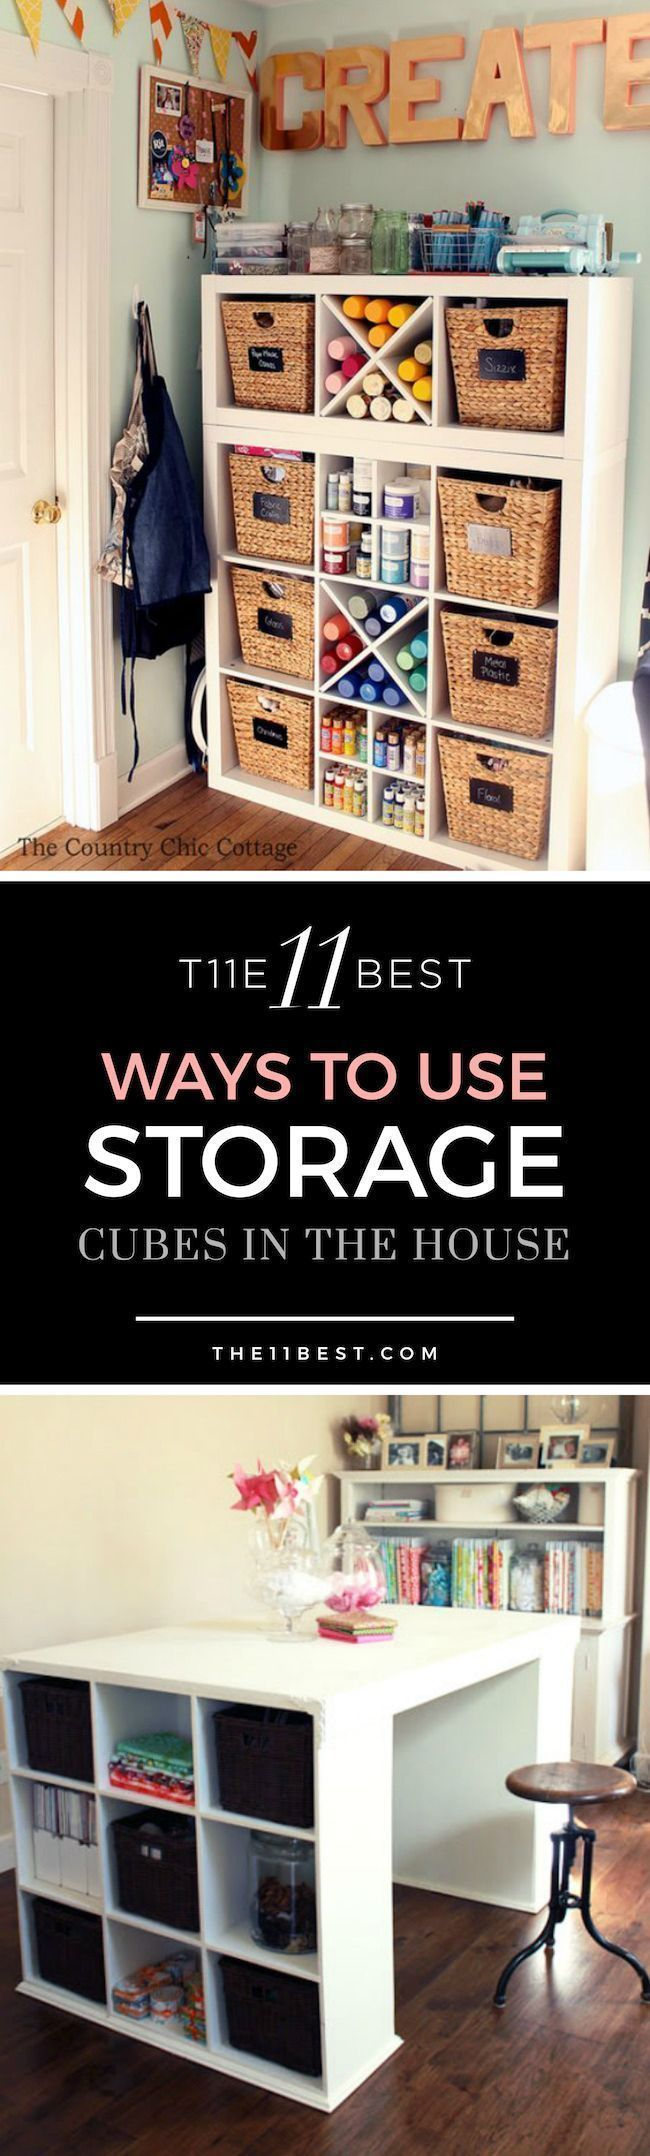 The 11 Best Ways to Use Storage Cubes in the House